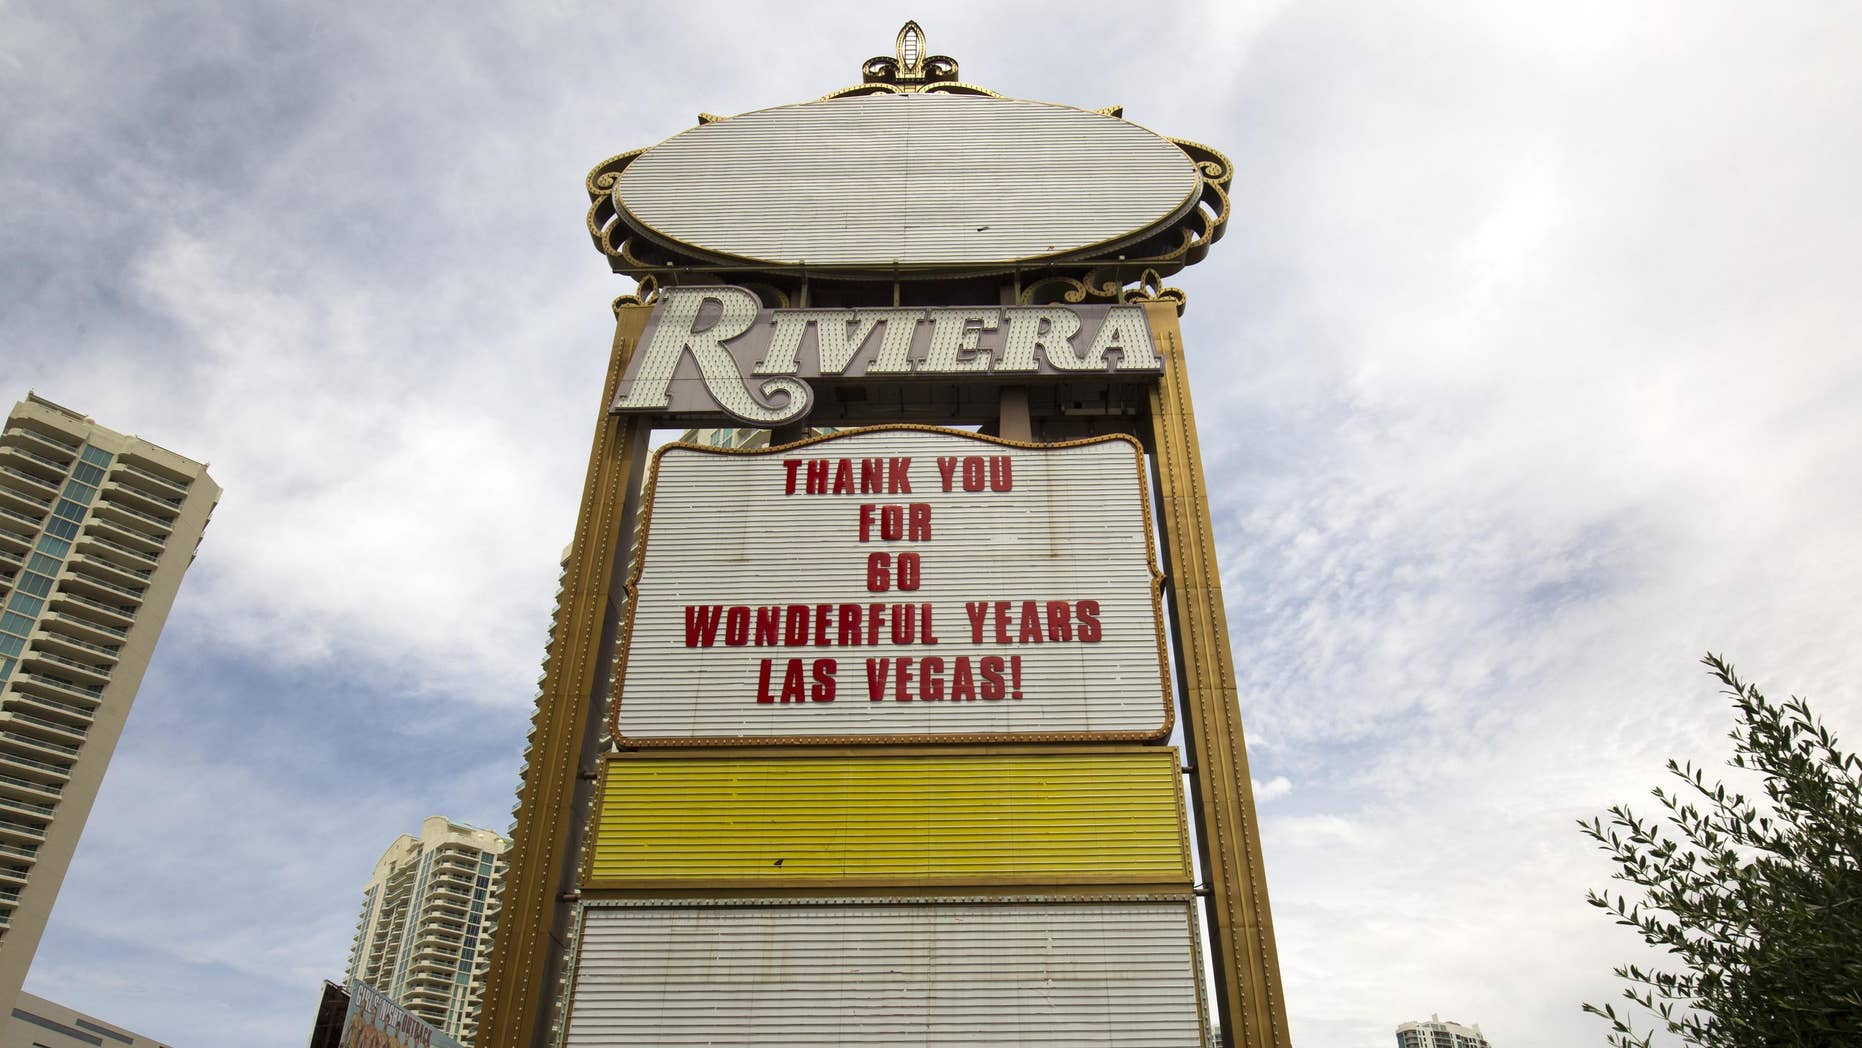 The Riviera sign in May 2015.